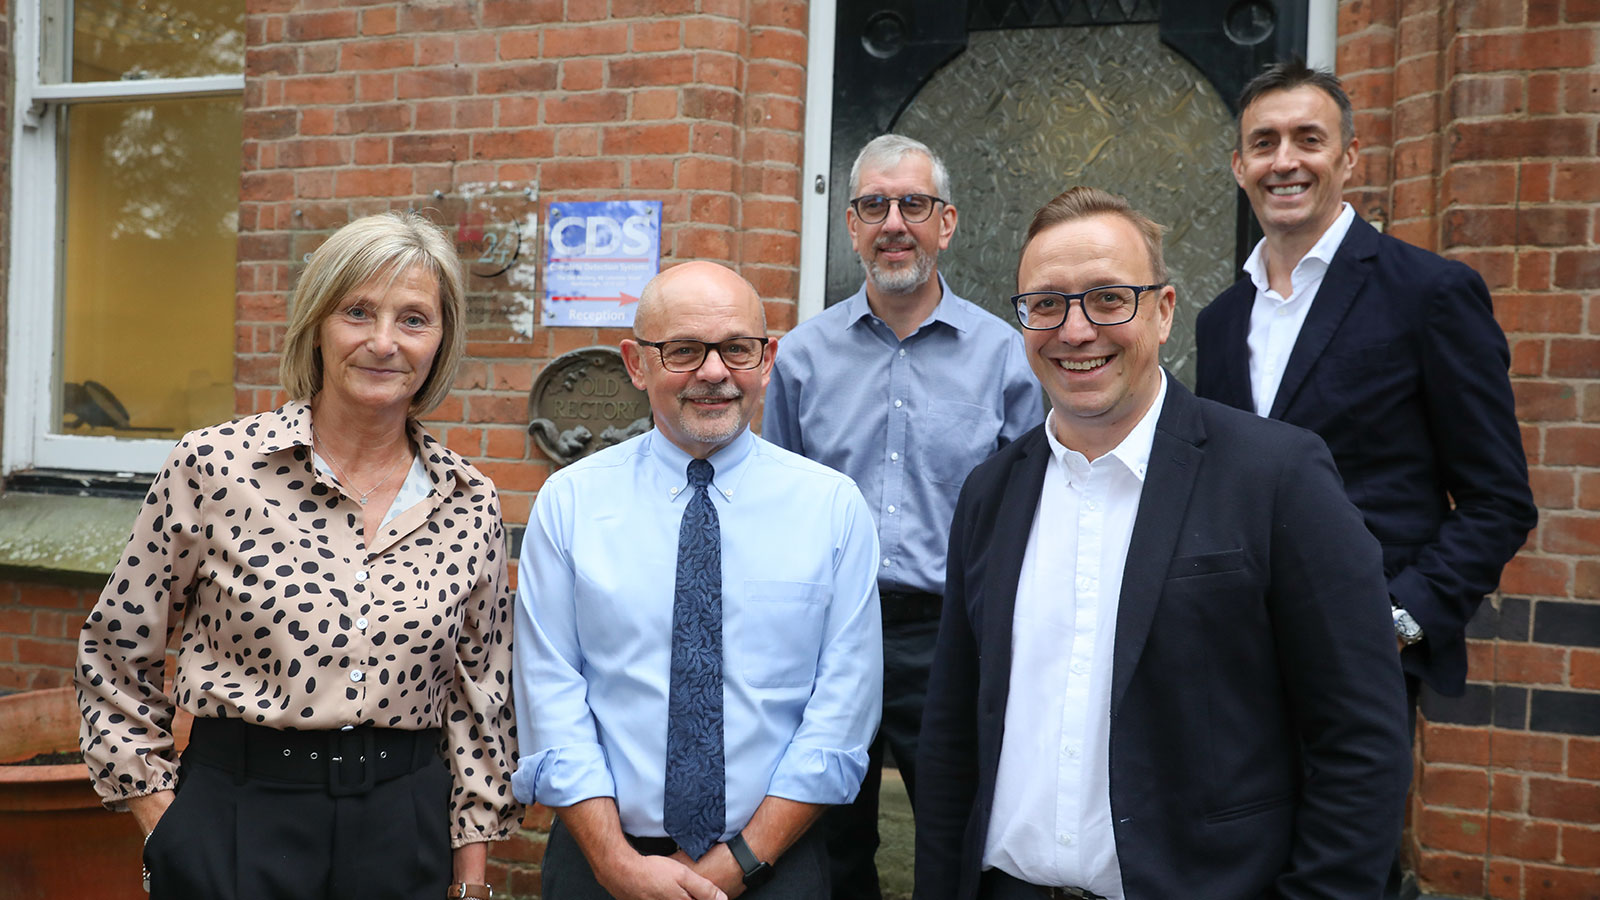 CDS directors welcome new MD and chairman with plans to develop the business